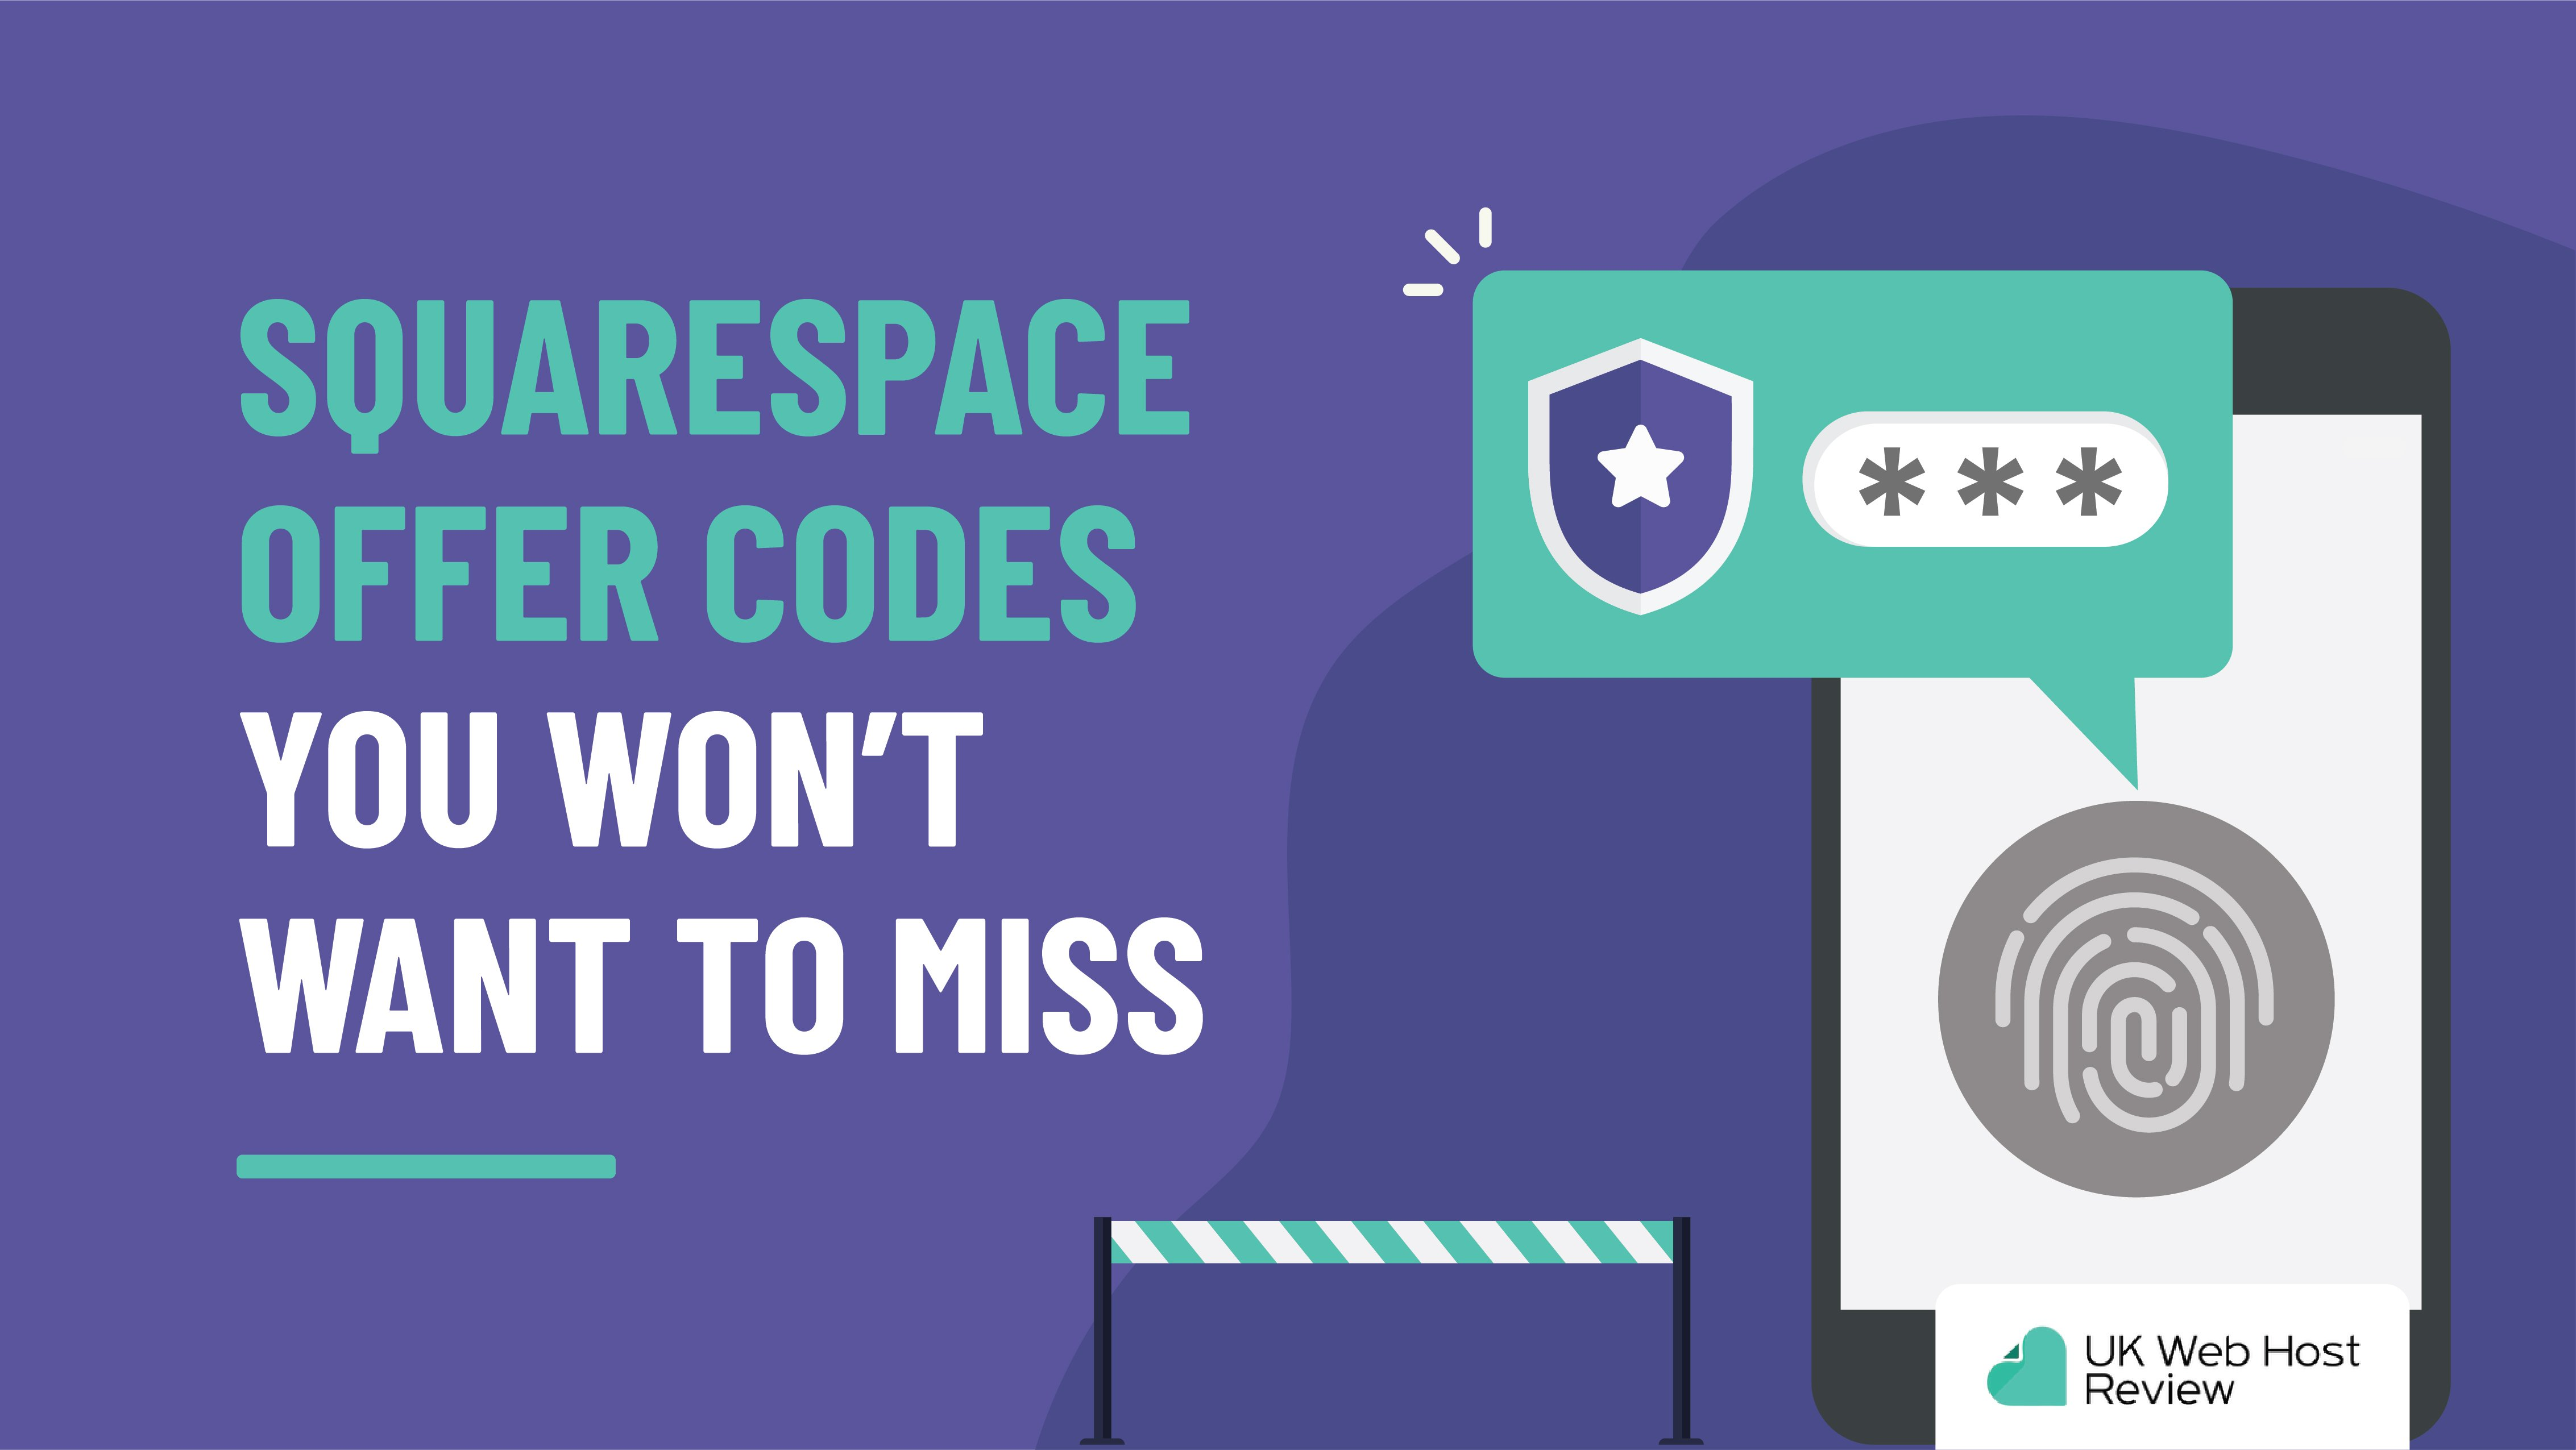 SquareSpace Offer Codes You Won't Want to Miss